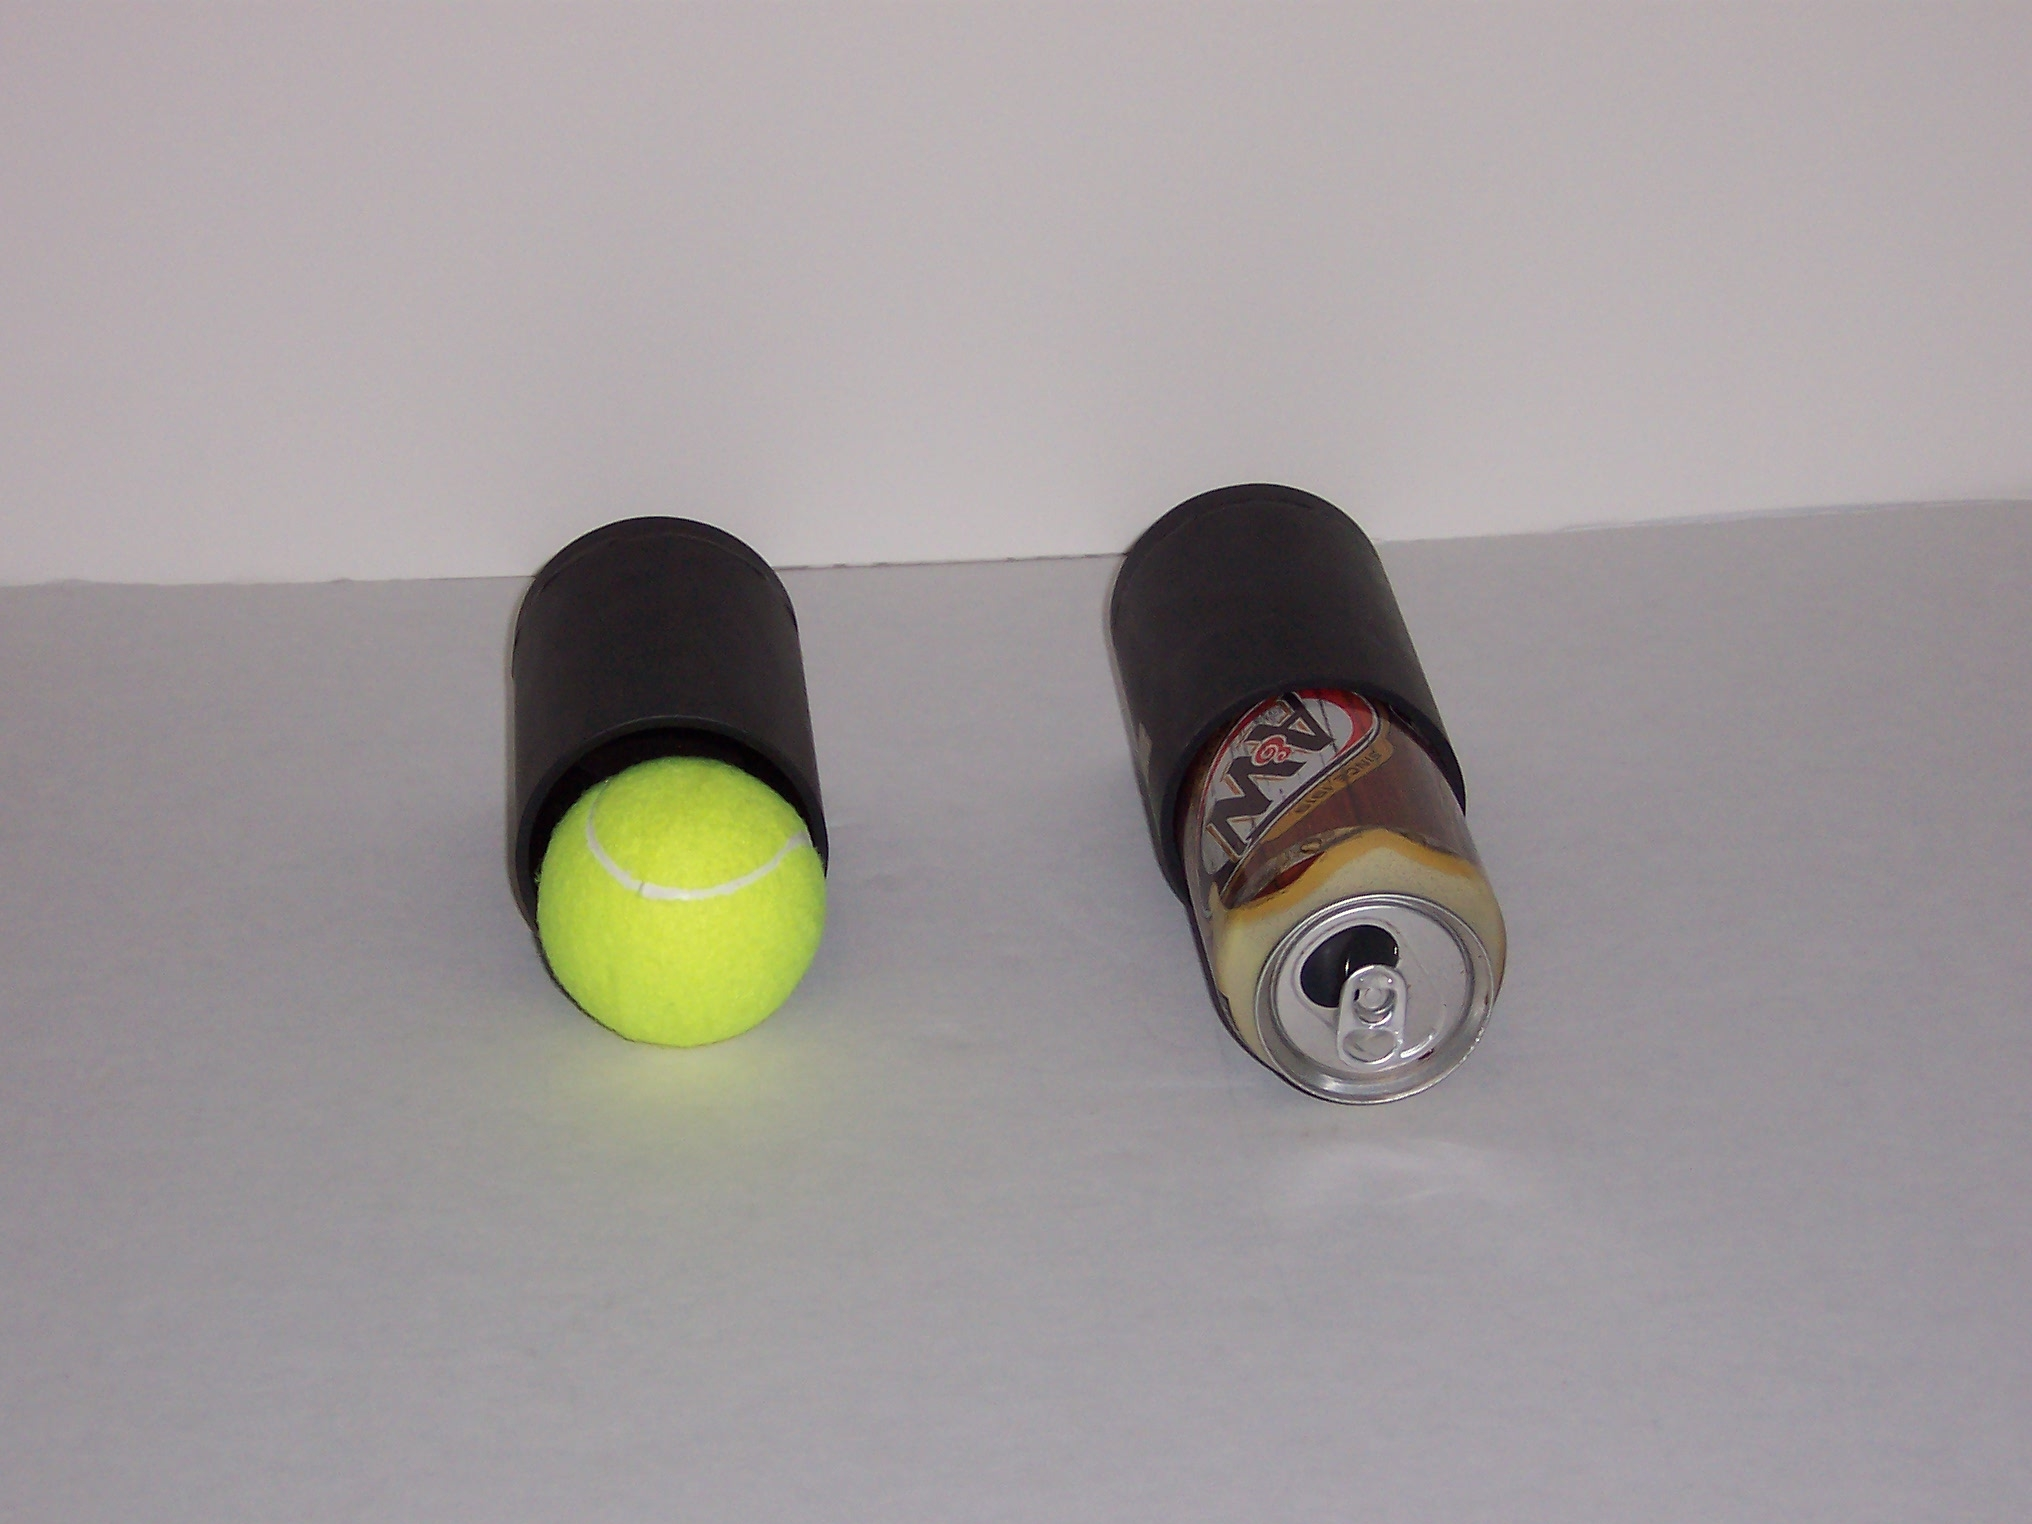 Top 12 Tennis Ball Cannon - Gorgeous Tiny